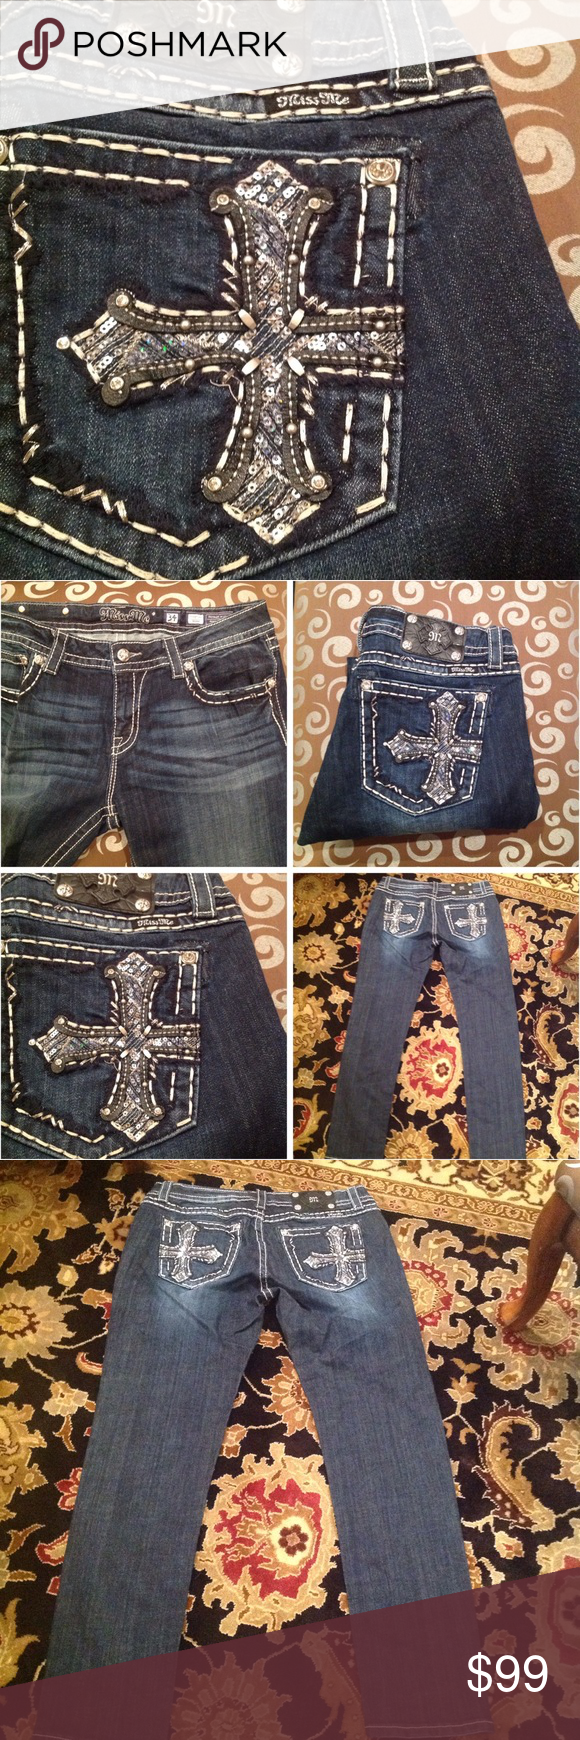 Miss Me ⓈⒺⓍⓎ➌➍🆕💋 These jeans are fabulous very figure flattering to with just the right amount of bling on the pockets they are brand-new never worn or washed without tags! ~ ♡inseam 31 PRICE FIRM Miss Me Jeans Skinny